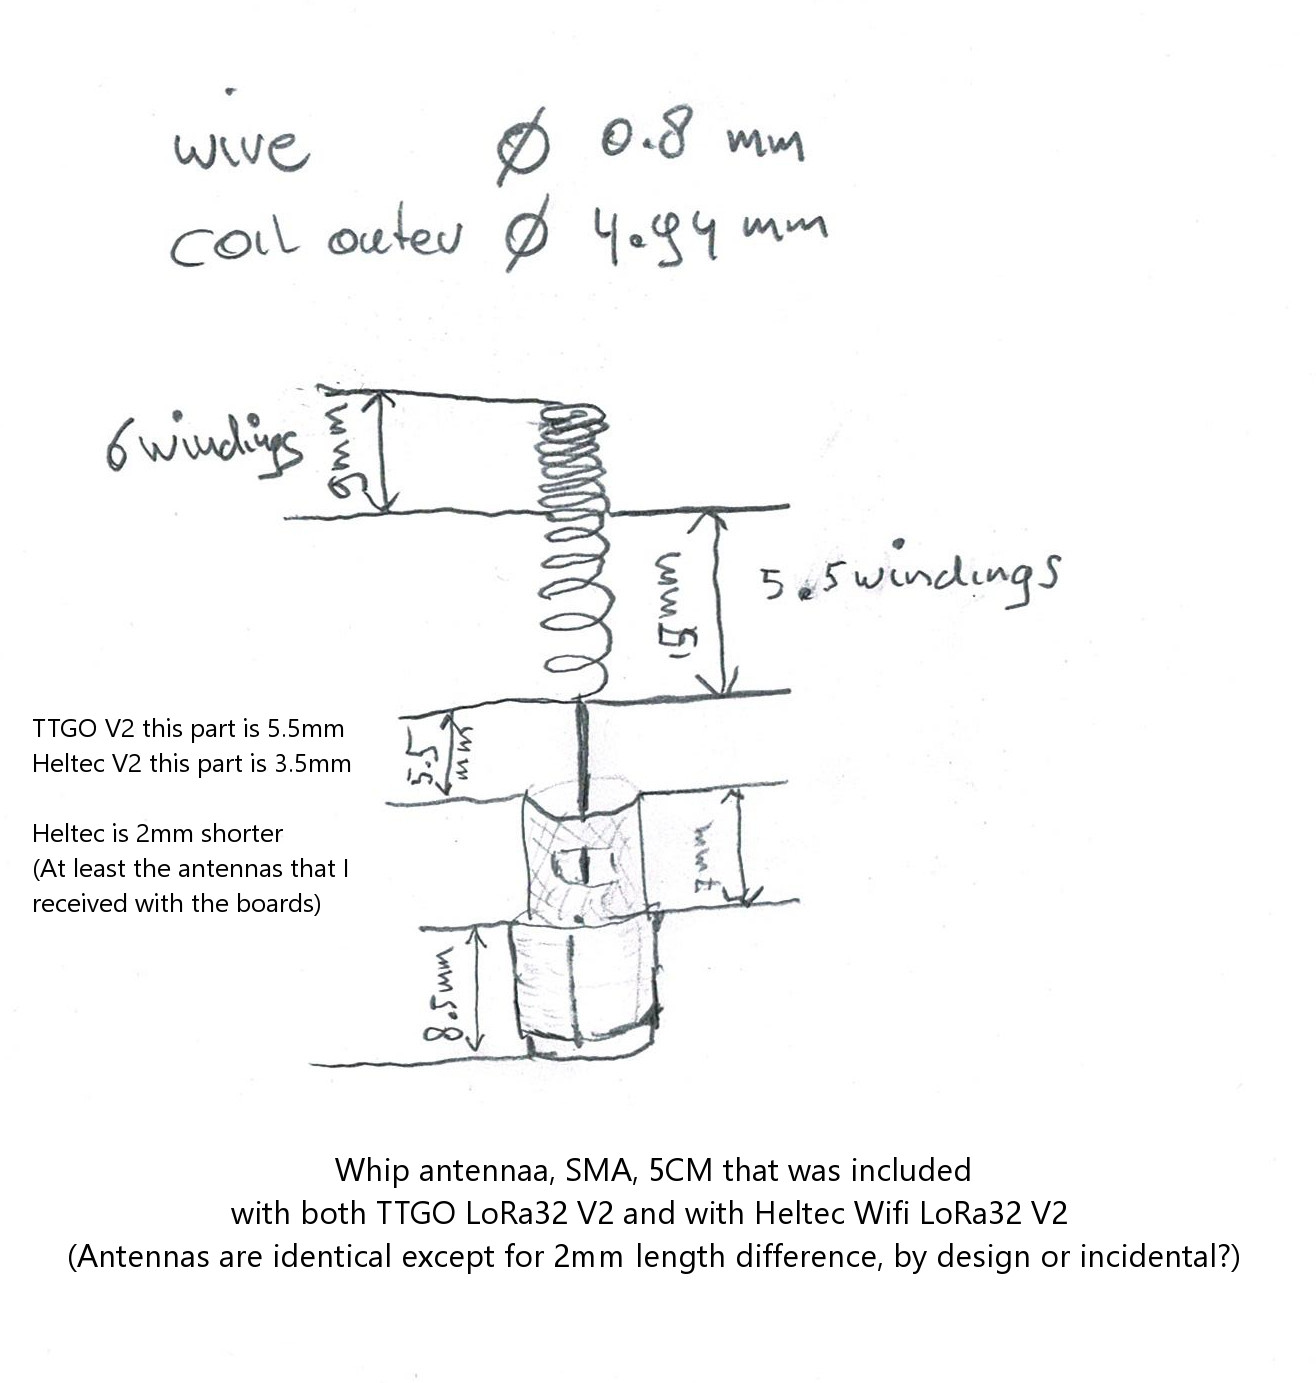 Whip antenna SMA 5cm included with TTGO V2 868MHz - drawing